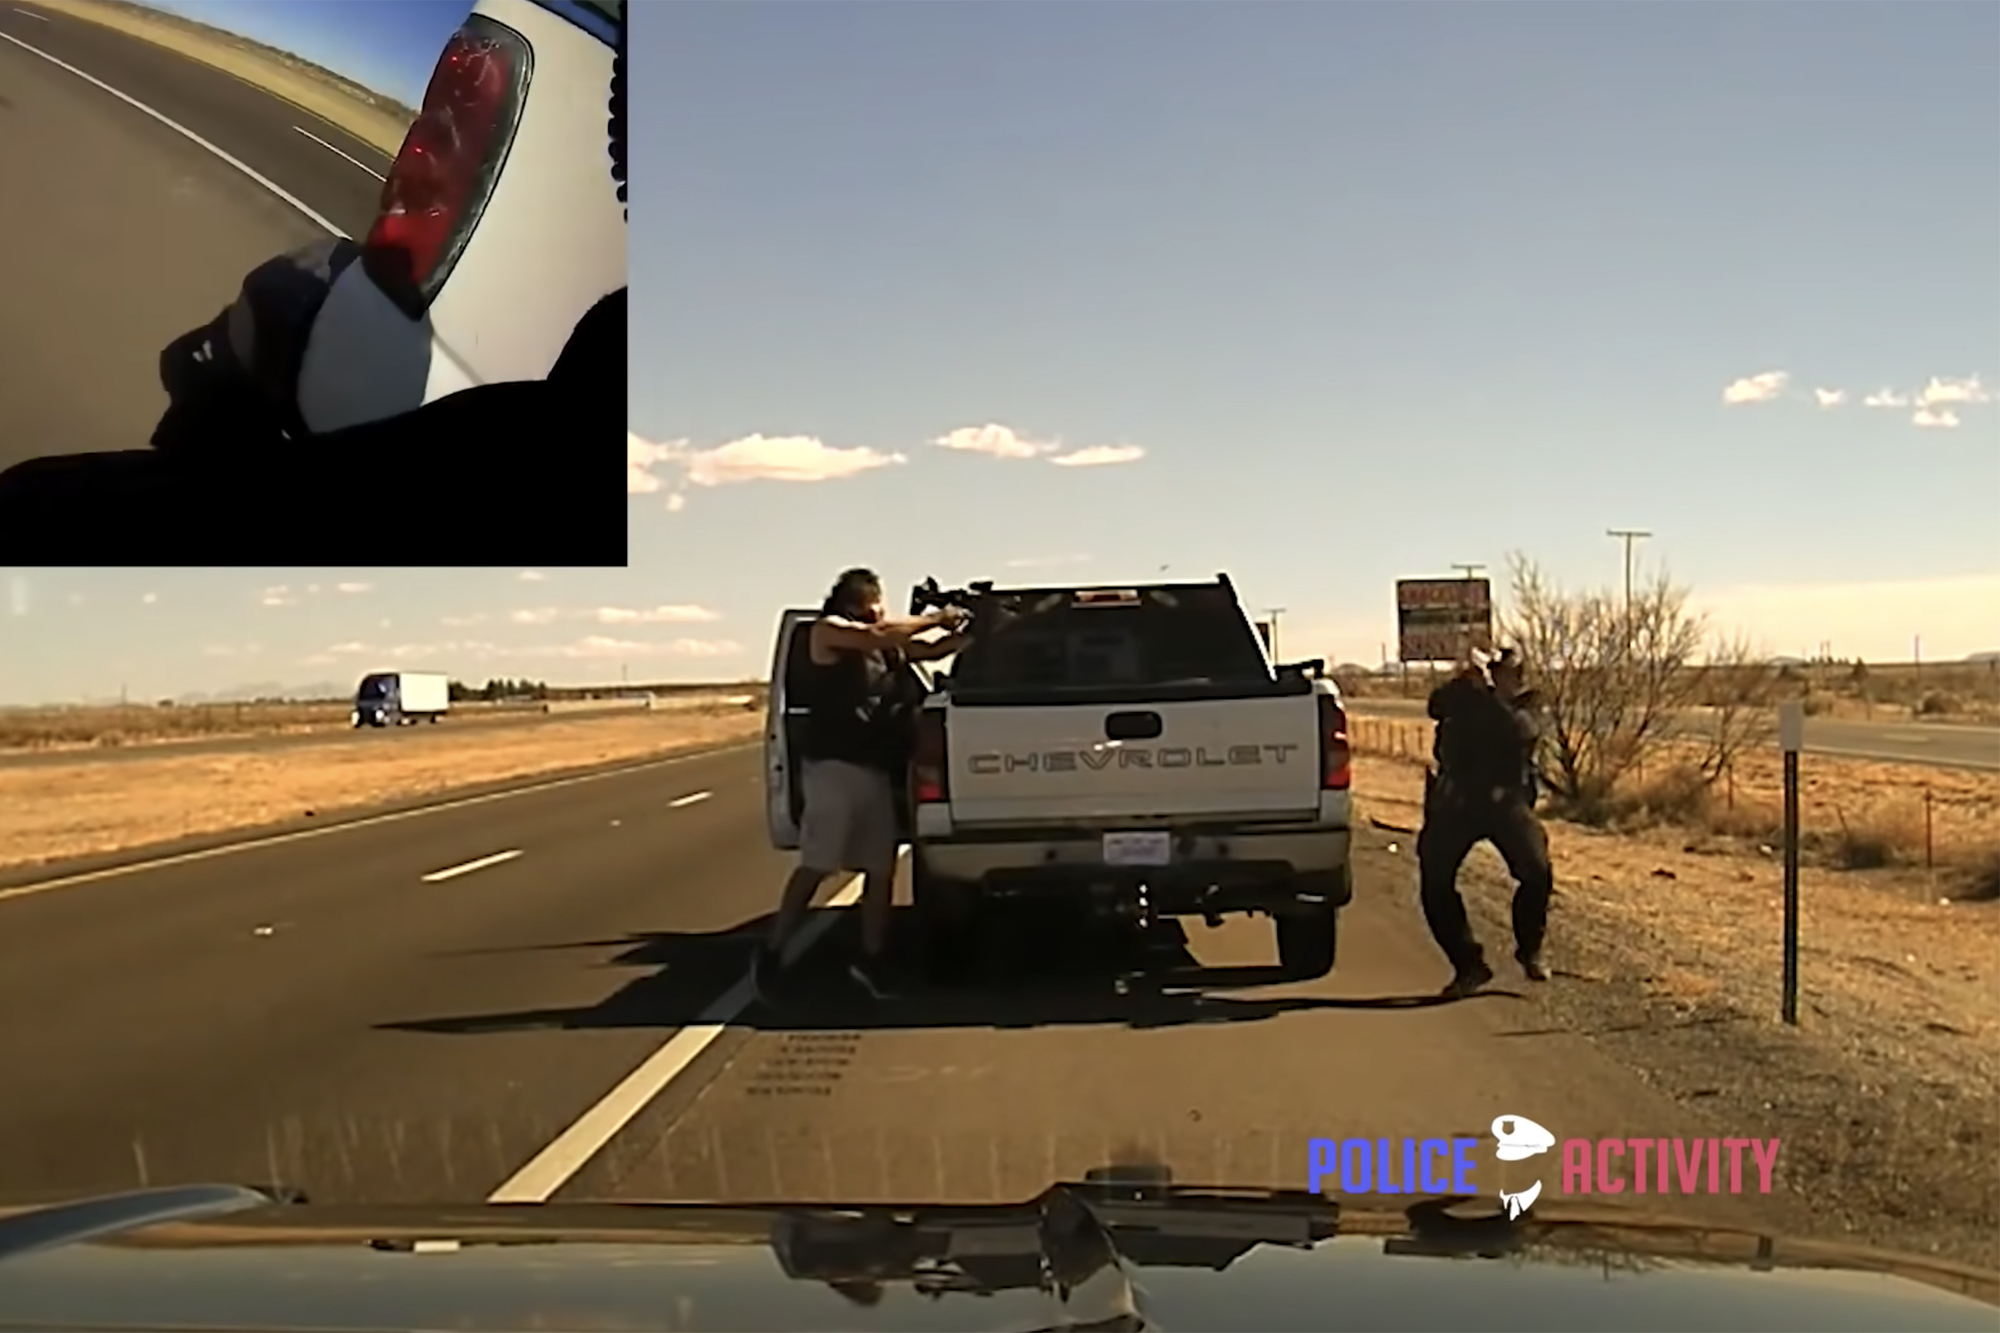 Grisly video shows New Mexico cop's shooting death during traffic stop